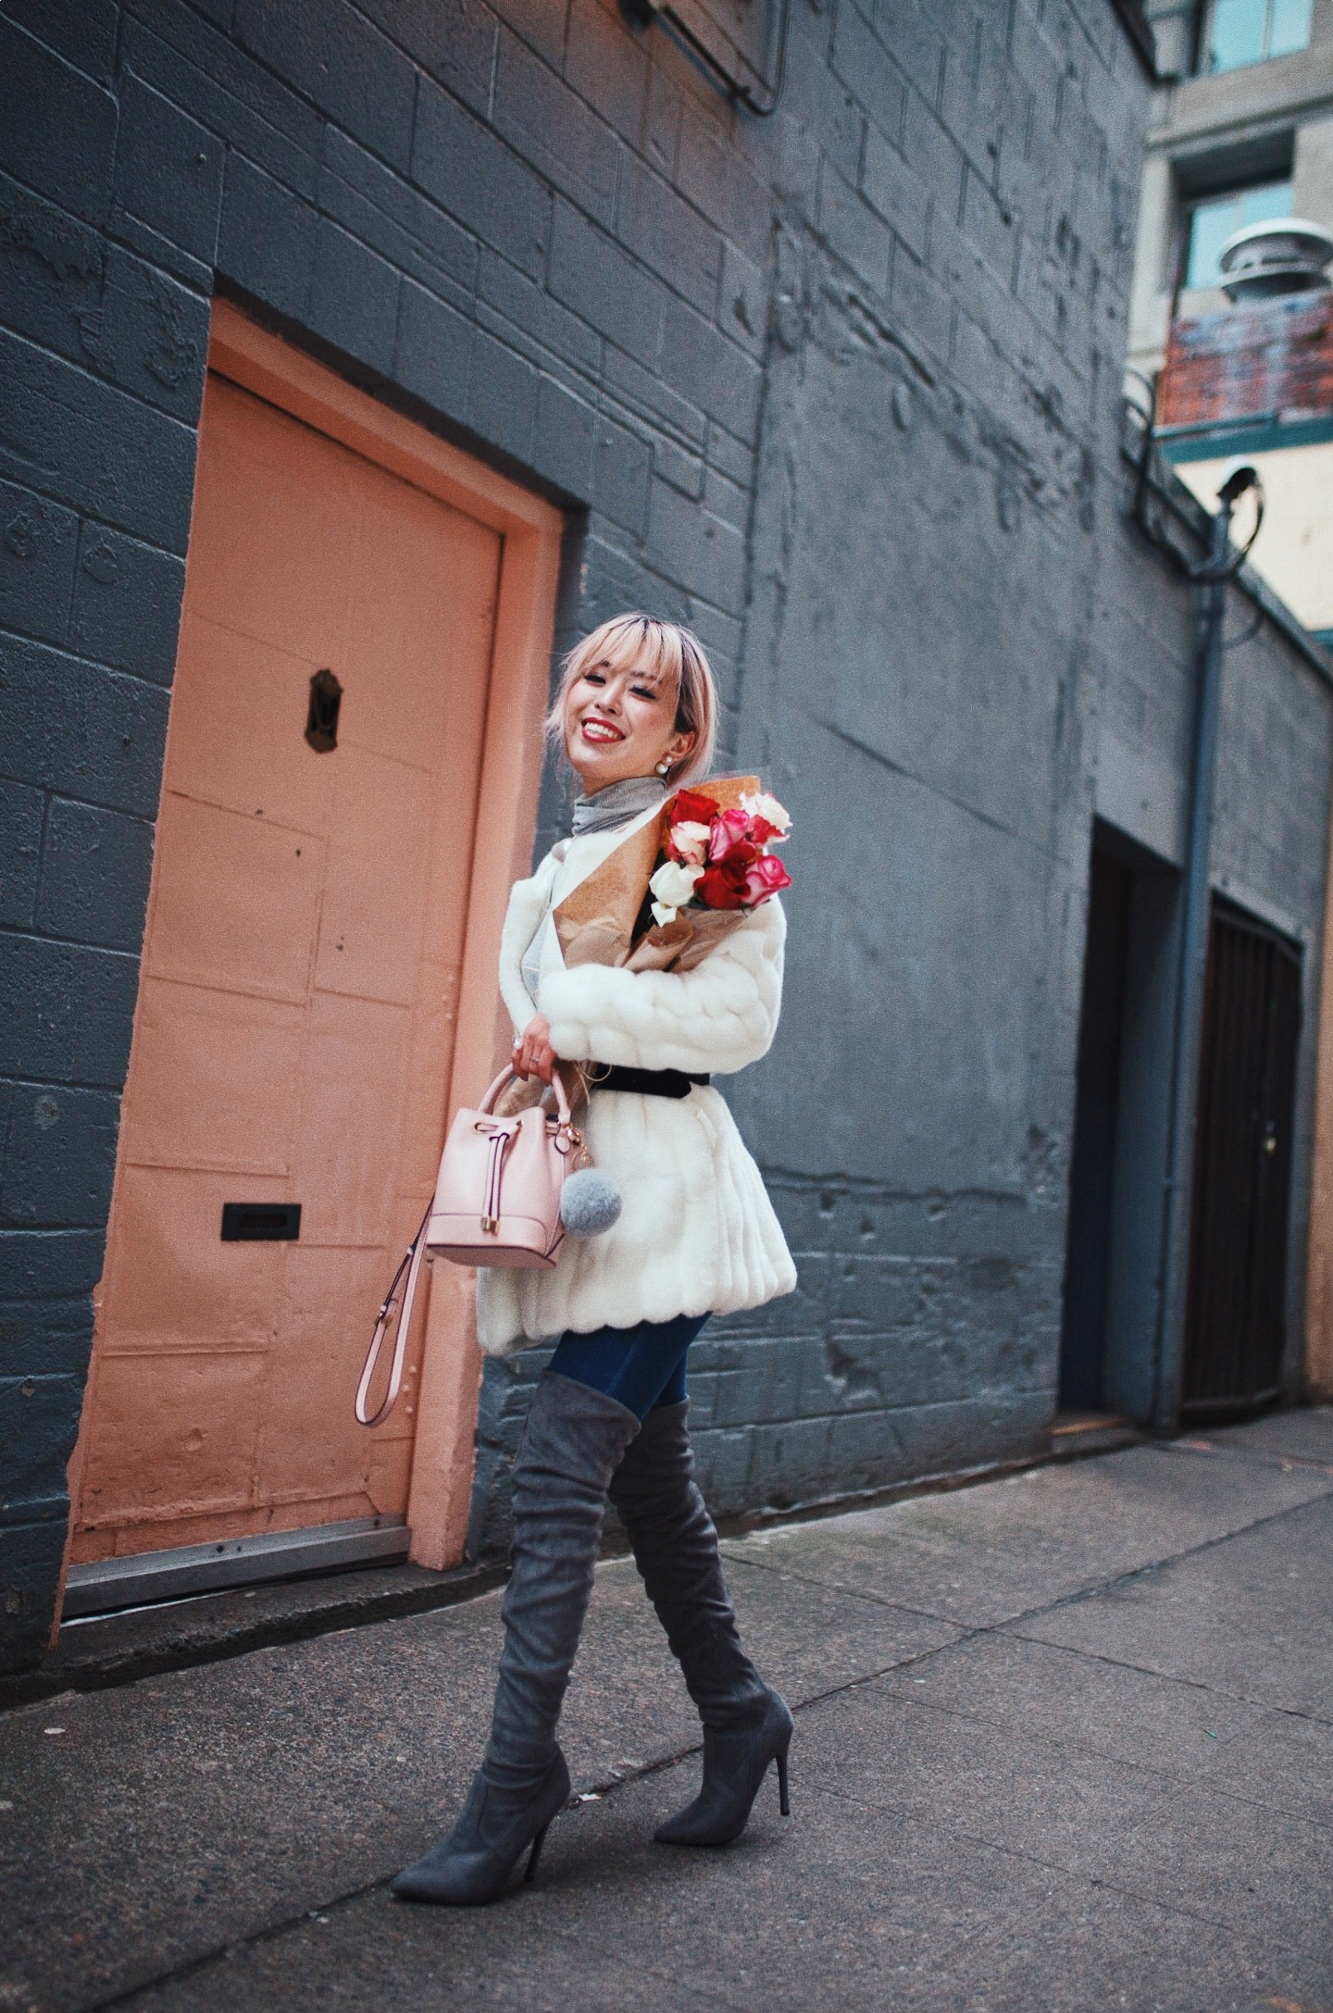 H&M Gray Turtleneck Sweater-ASOS high waisted skinny jean-EGO Grey Over the Knee Boots-While Faux Fur Coat-Forever 21 Pearl Belt & Pink Mini Basket Bag-Chanel Ribbon Hair-Valentine's Day-Rose bouquet-Pink Hair-Japanese-Seattle Style Fashion Blogger-AikA's Love Closet 13